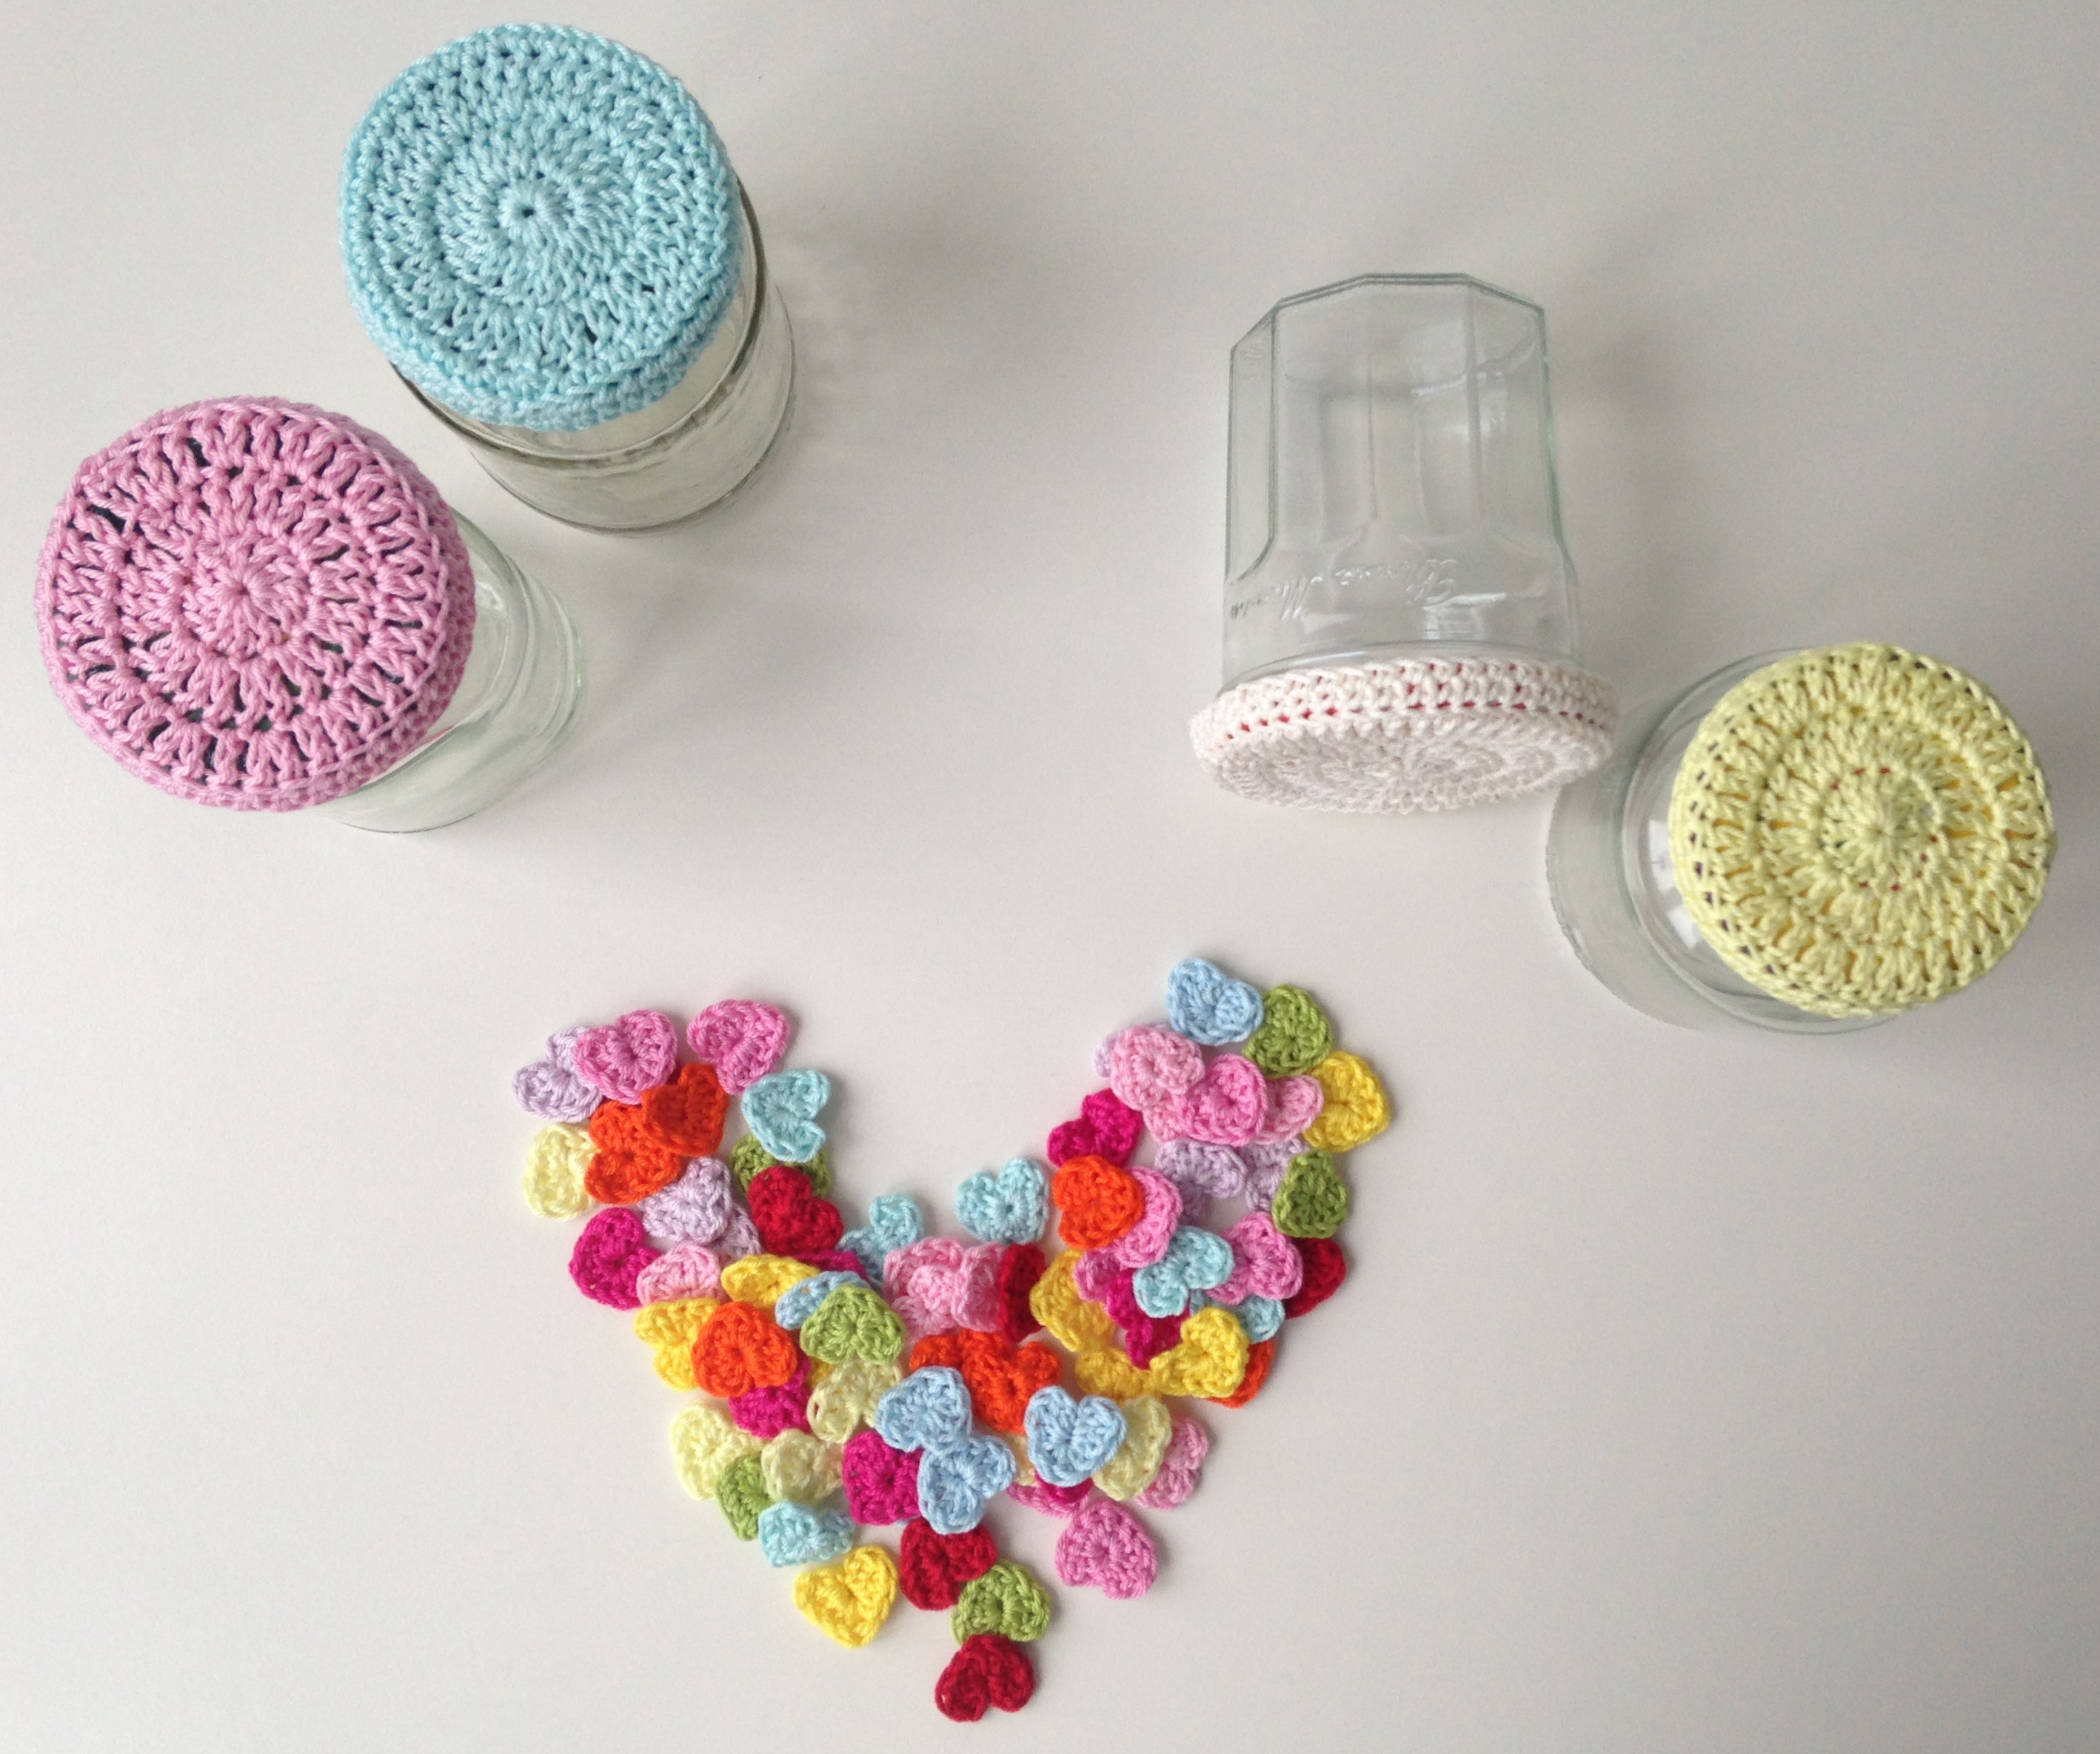 Crochet Patterns Jar Covers : Crocheted Jar Lid Covers maRRose - Colorful Crochet & Crafts